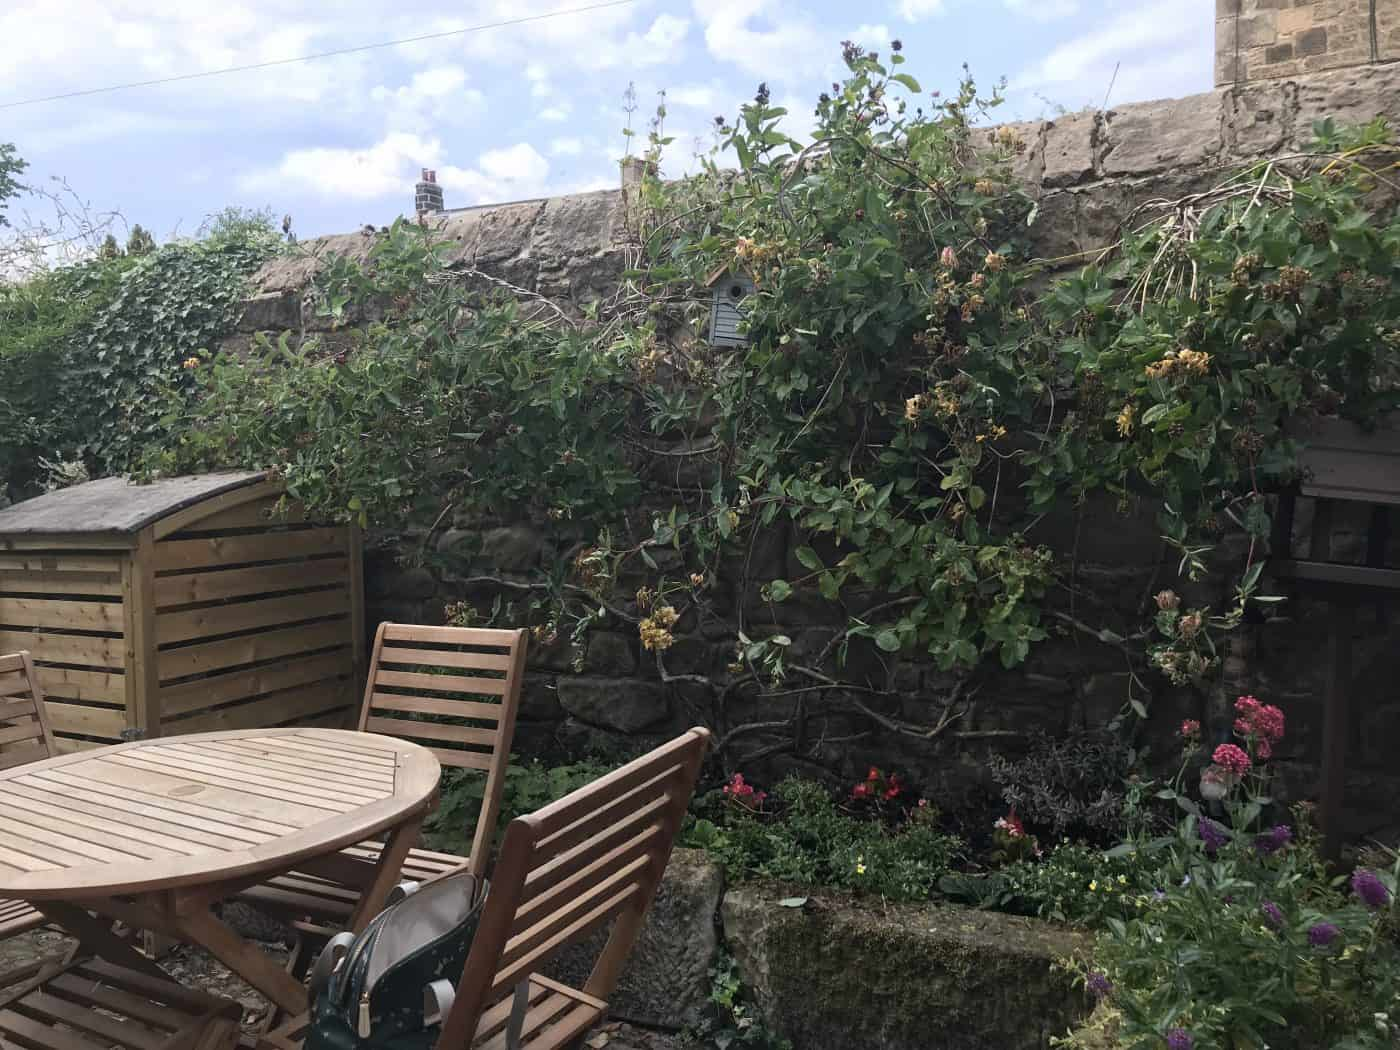 Karens Kottages - Northumberland - Stanegate Cottage - Dogfriendly